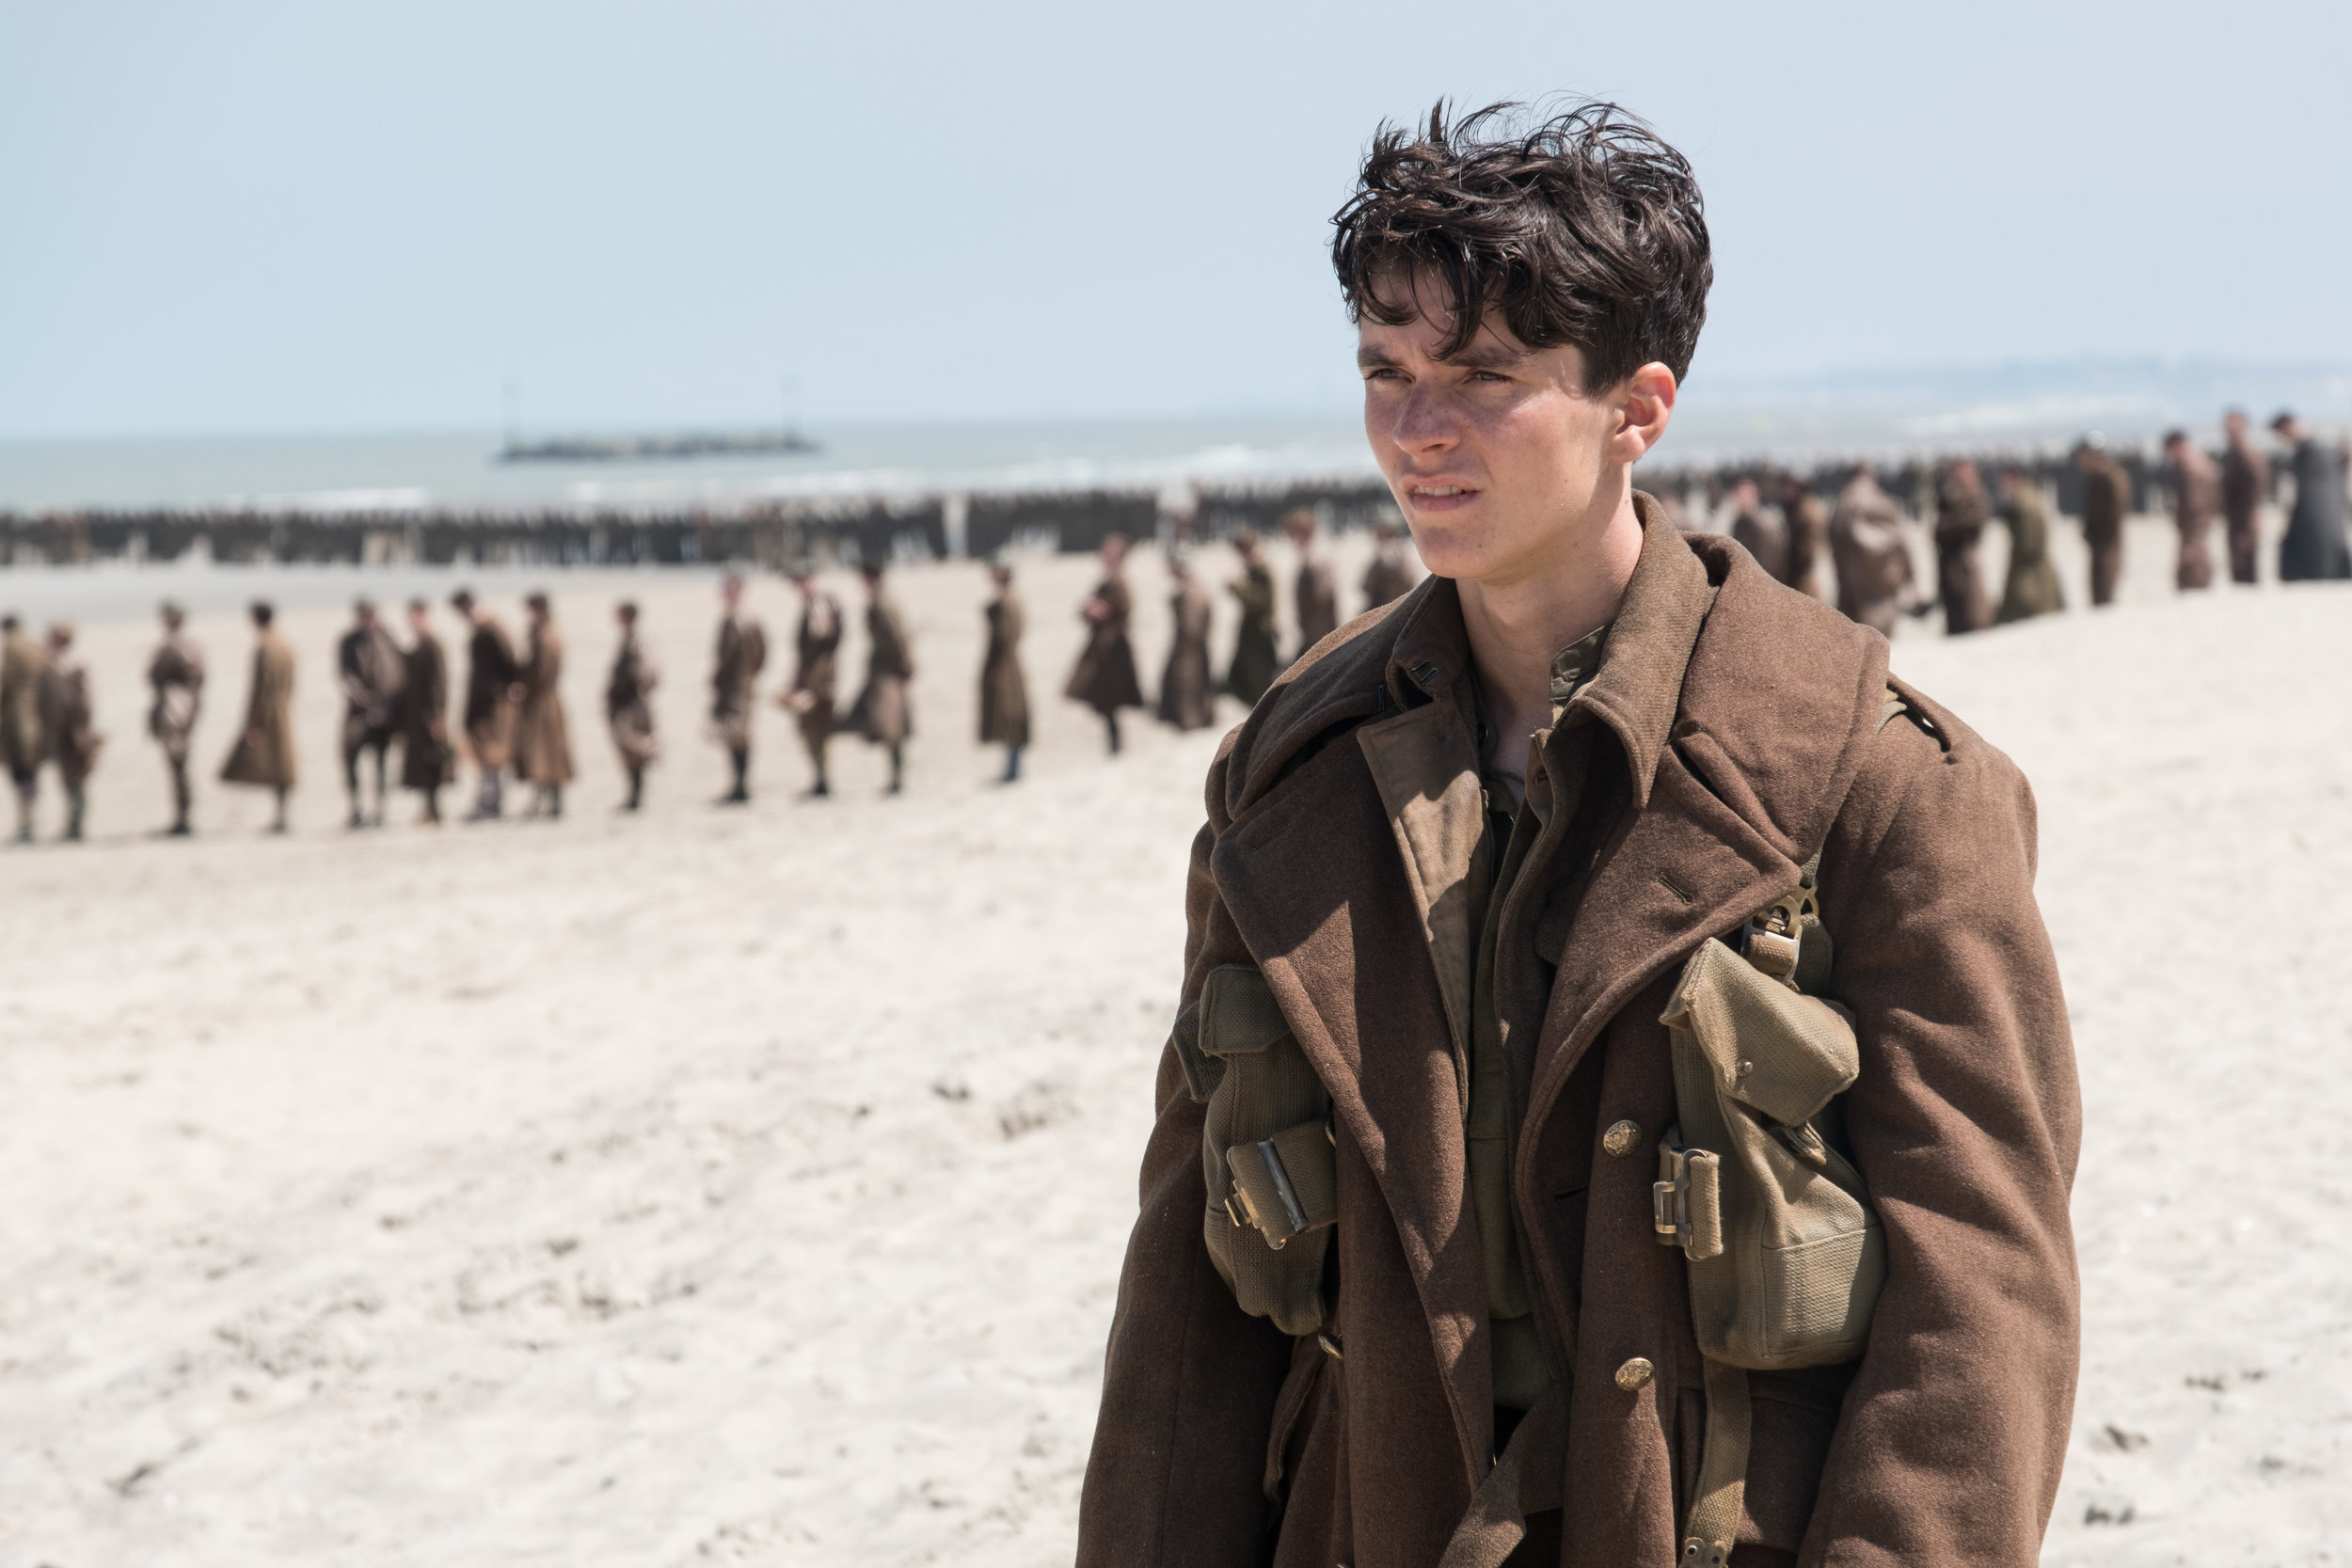 "3. DUNKIRK | Directed by Christopher Nolan | Release Date: July 21, 2017   A war film unlike any other we have seen before, Christopher Nolan's disorienting, exceptional, masterful  Dunkirk  tells us a World War II story from three different perspectives - by ground, by sea, and by air. Told in a non-linear style, until the three stories converge upon one another unexpectedly, and with breathtaking results, Nolan has left science-fiction and fantastical adventure and gotten gritty. The results are astonishing.   Dunkirk  doesn't play by conventions. A main character doesn't have a name for the first 30-40 minutes. Discussions of war-time decisions lack context, with most viewers perhaps confused by what is being discussed, since the rescue of 400,000 British military soldiers is not a commonly known tale in the United States. A man, with his sons, navigates a personal yacht with supplies to try and aid in the rescue efforts. Soldiers are forced to band together, never having a thought in questioning loyalty or ""sides."" And a fighter pilot is in near constant battles with German pilots coming in from seemingly every angle.  Nolan places us in the confusing fog of all of these situations. We go from day-to-night and things feel haphazardly constructed, things may seem sequenced wrong. Nolan orchestrates a lyrical cadence to this war. He builds to a final act like a symphonic composer hitting a crescendo at just the right moment. Suddenly, we understand everything that is happening, the stakes feel real, our hearts are in our throats, and we simply hold on and ride this thing out until Nolan decides to take his foot off the accelerator.   Dunkirk  will likely rank among the best films of the decade as we move past 2017, and Nolan's ability to take us on a journey is unparalleled."